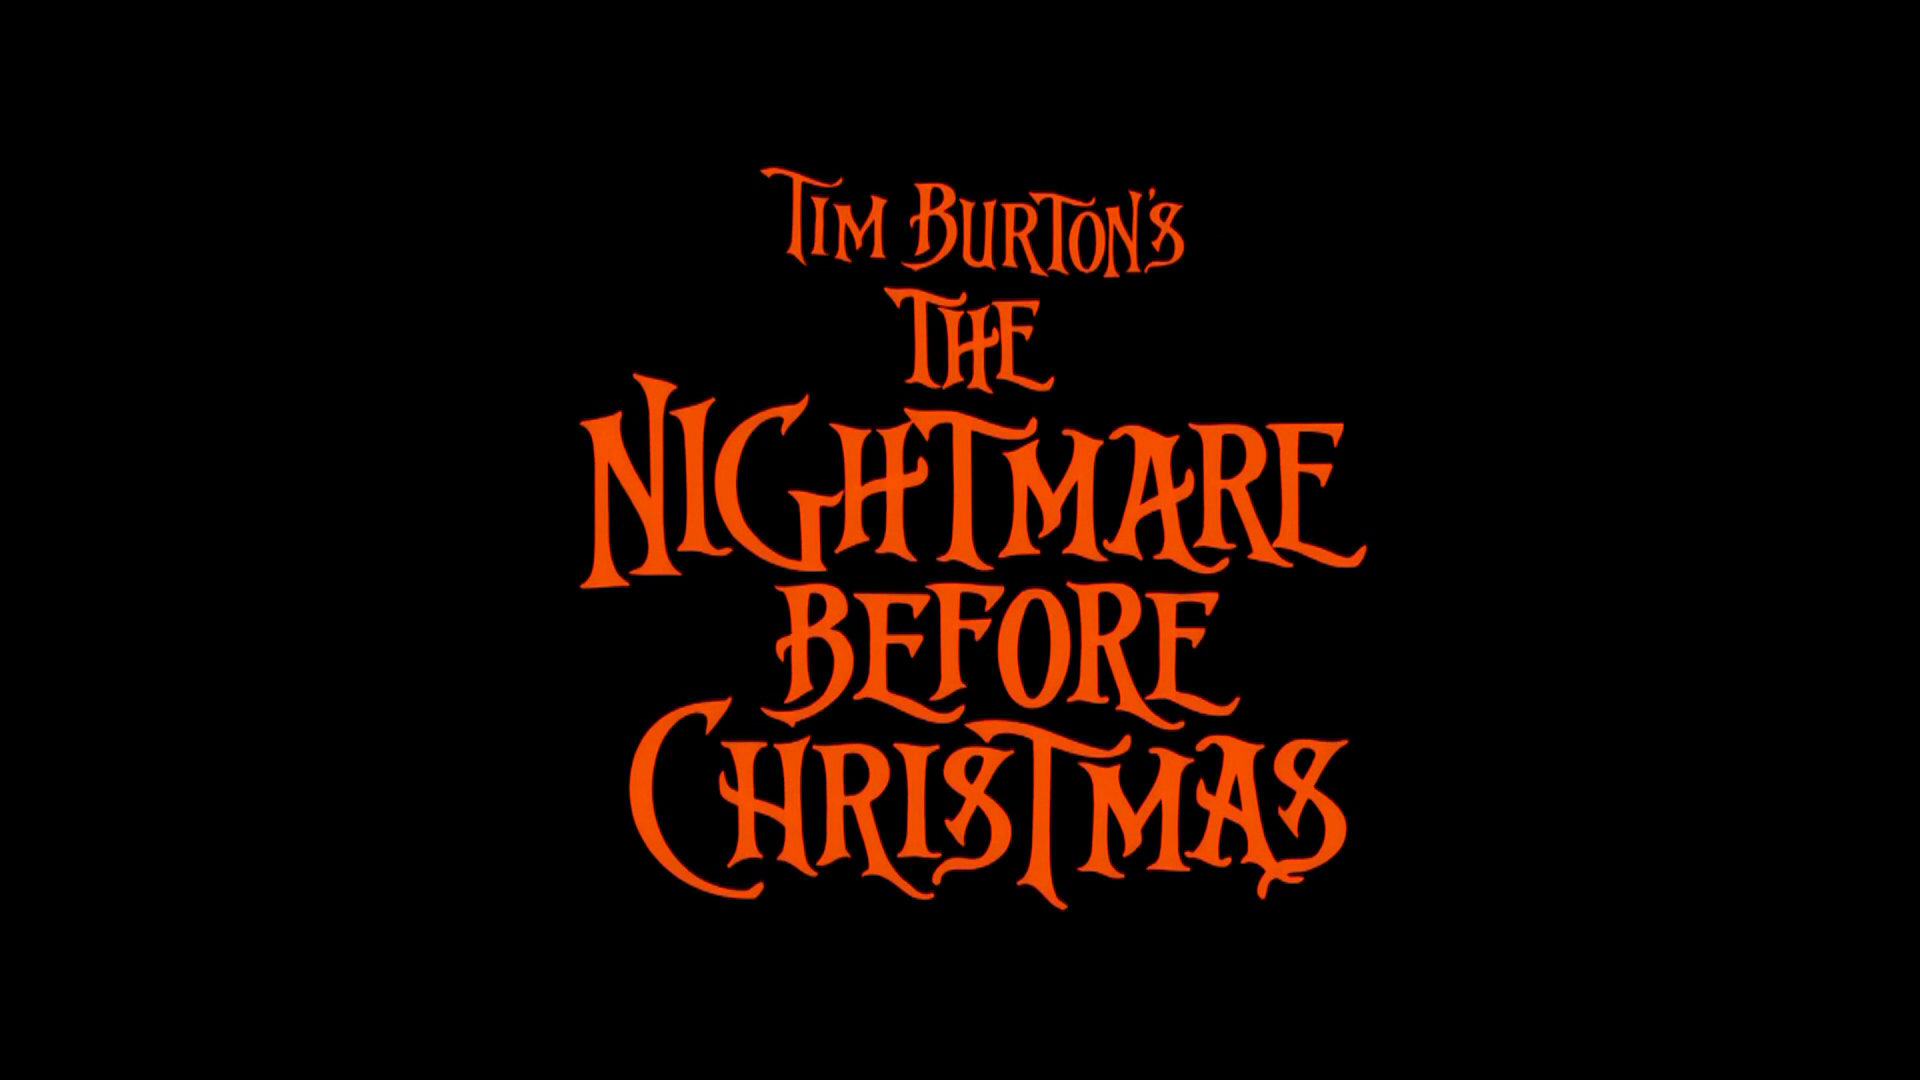 ... ://logos.wikia.com/wiki/The_Nightmare_Before_Christmas?oldid=555712